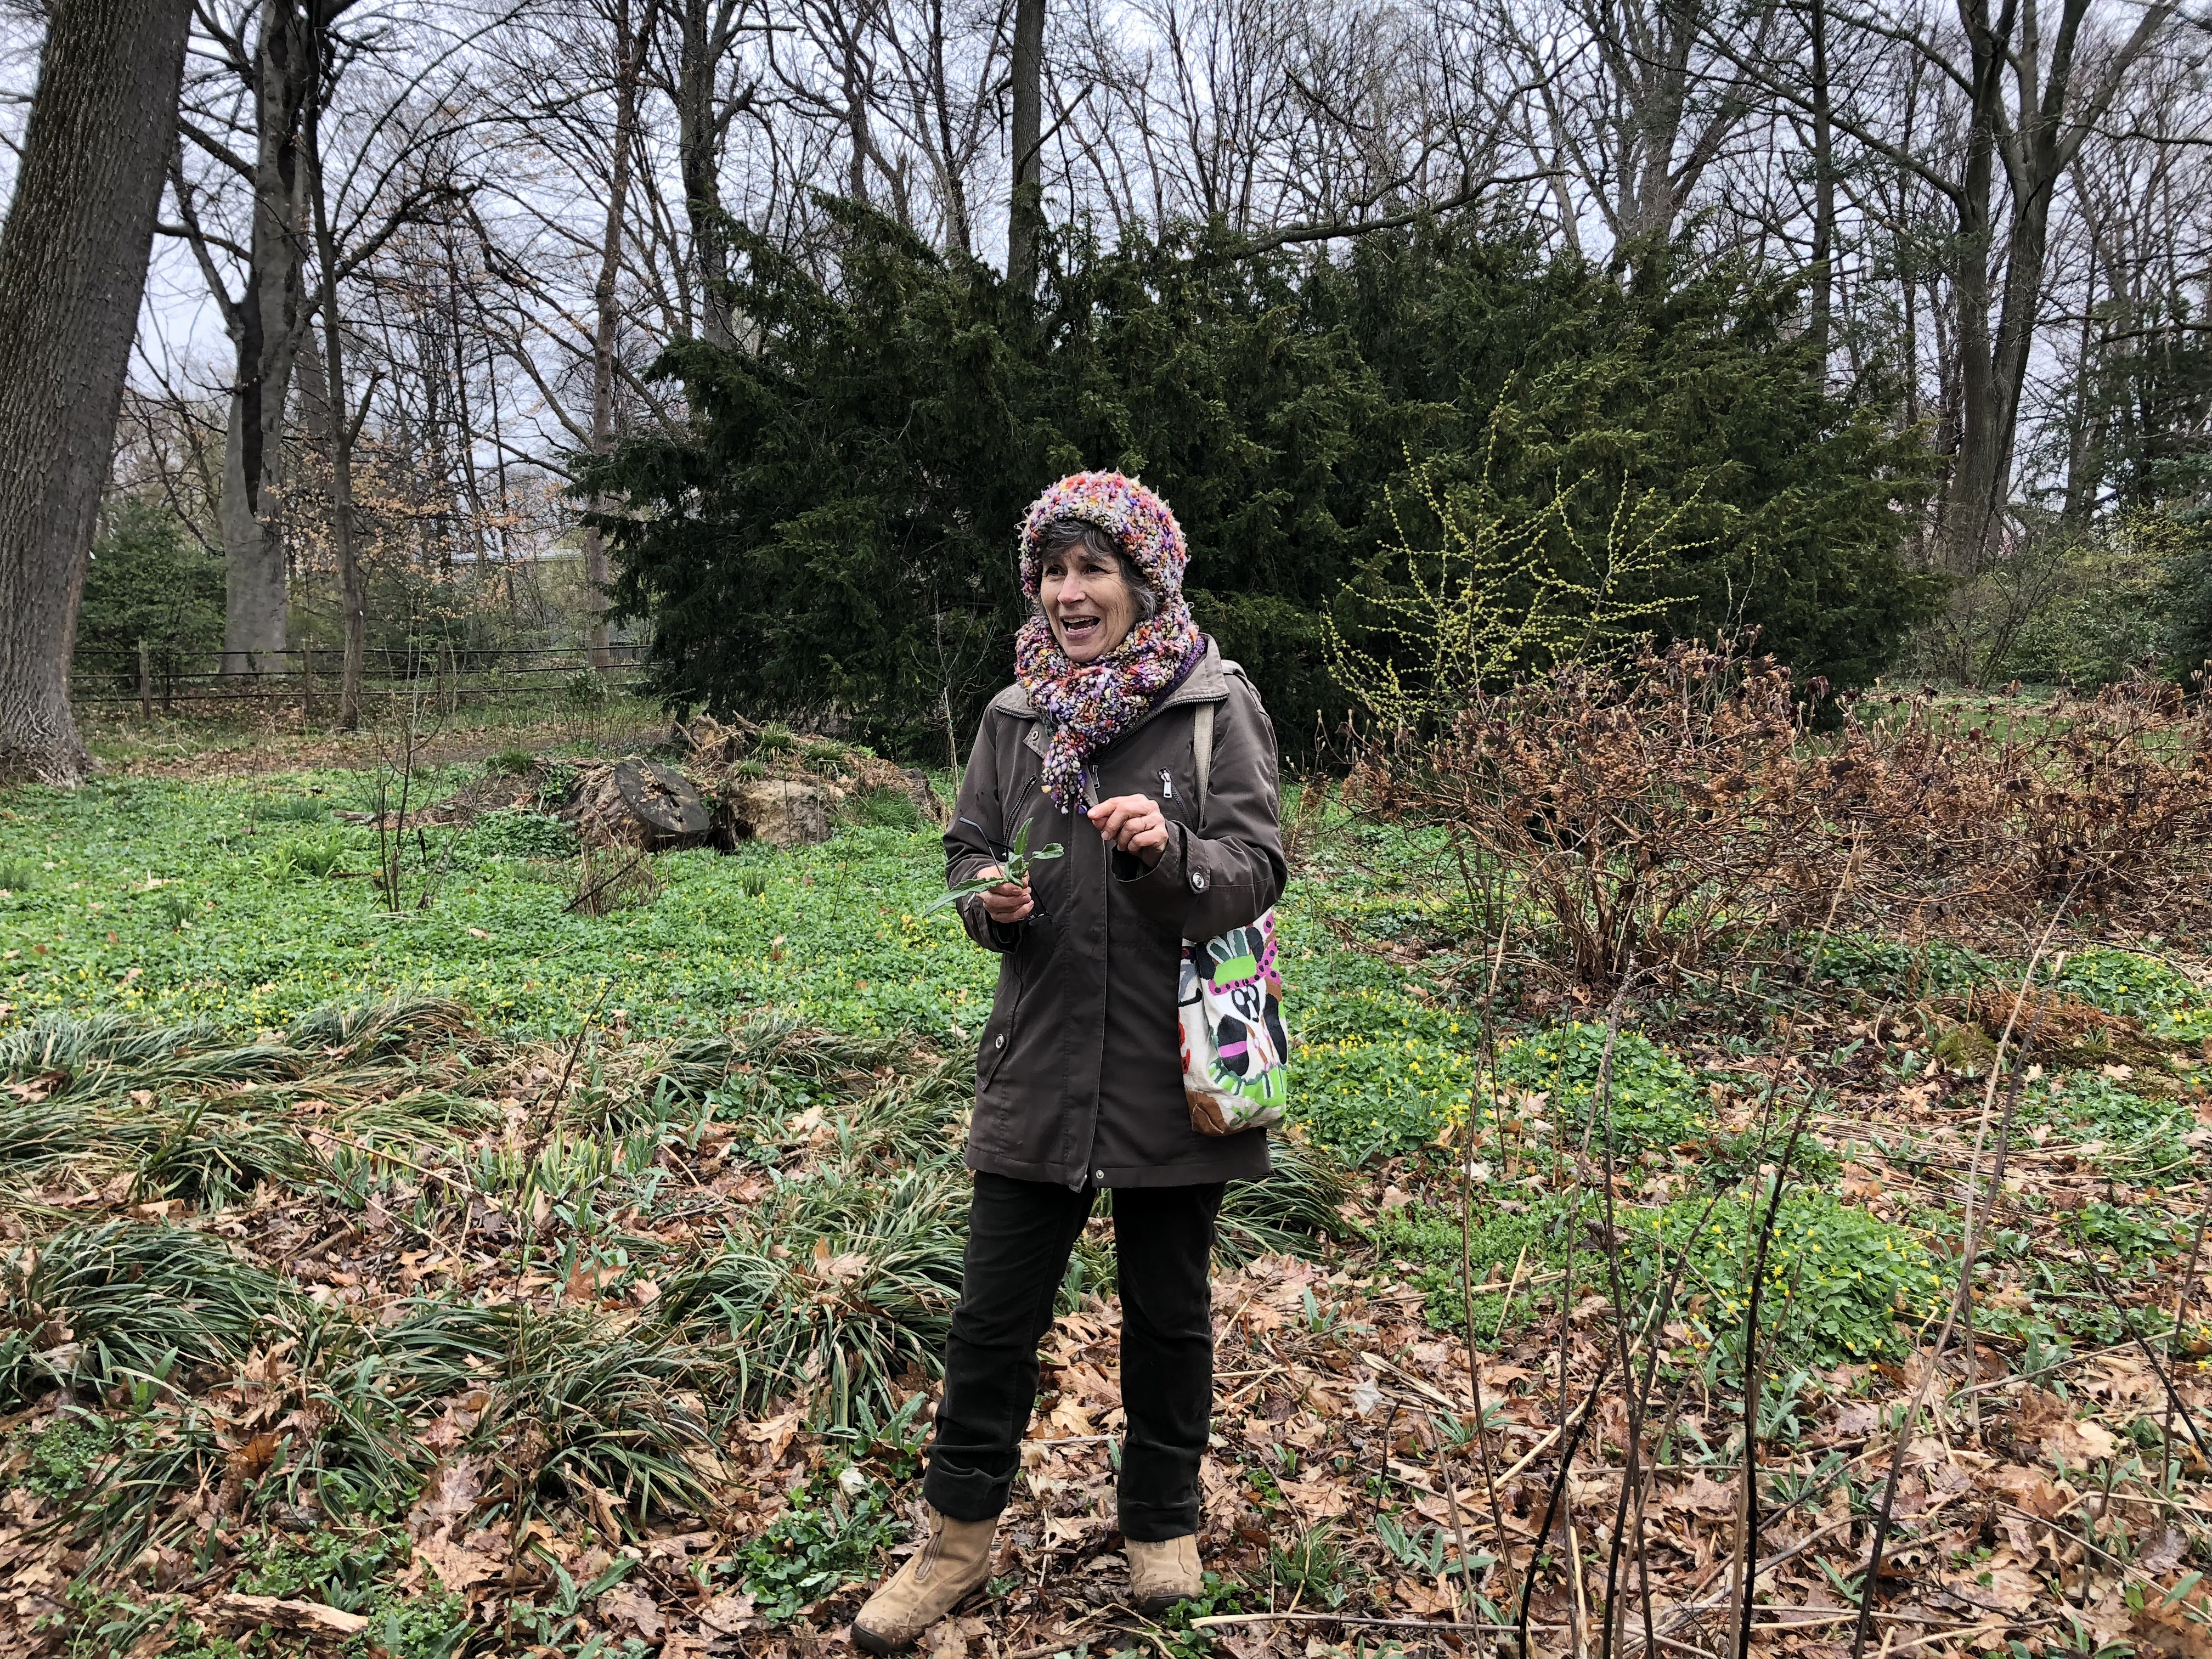 The Wild Foodies of Philly seek to introduce people to edible foods growing naturally in the surrounding environment.GRACE DICKINSON / STAFF